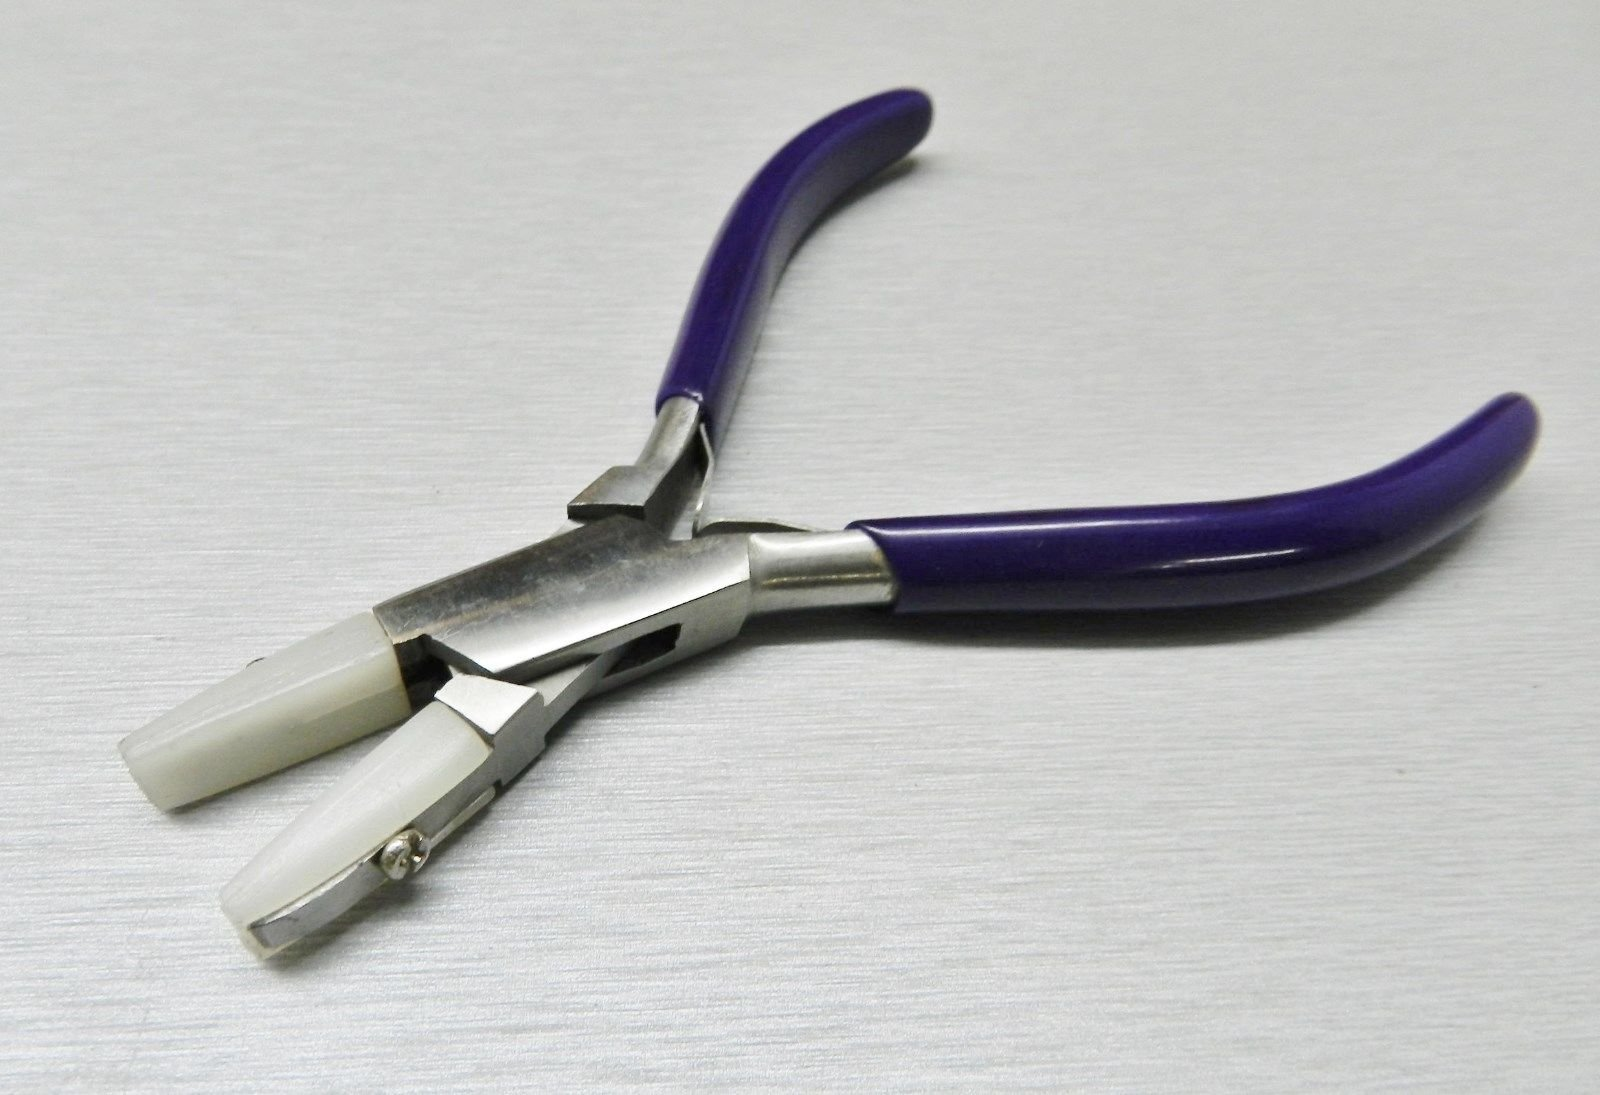 PLIERS FLAT NYLON JAWS NOSE JEWELRY BEAD WIRE WORK TOOL STRAIGHTEN WIRES + EXTRA (E 3) NOVELTOOLS by NOVELTOOLS (Image #9)